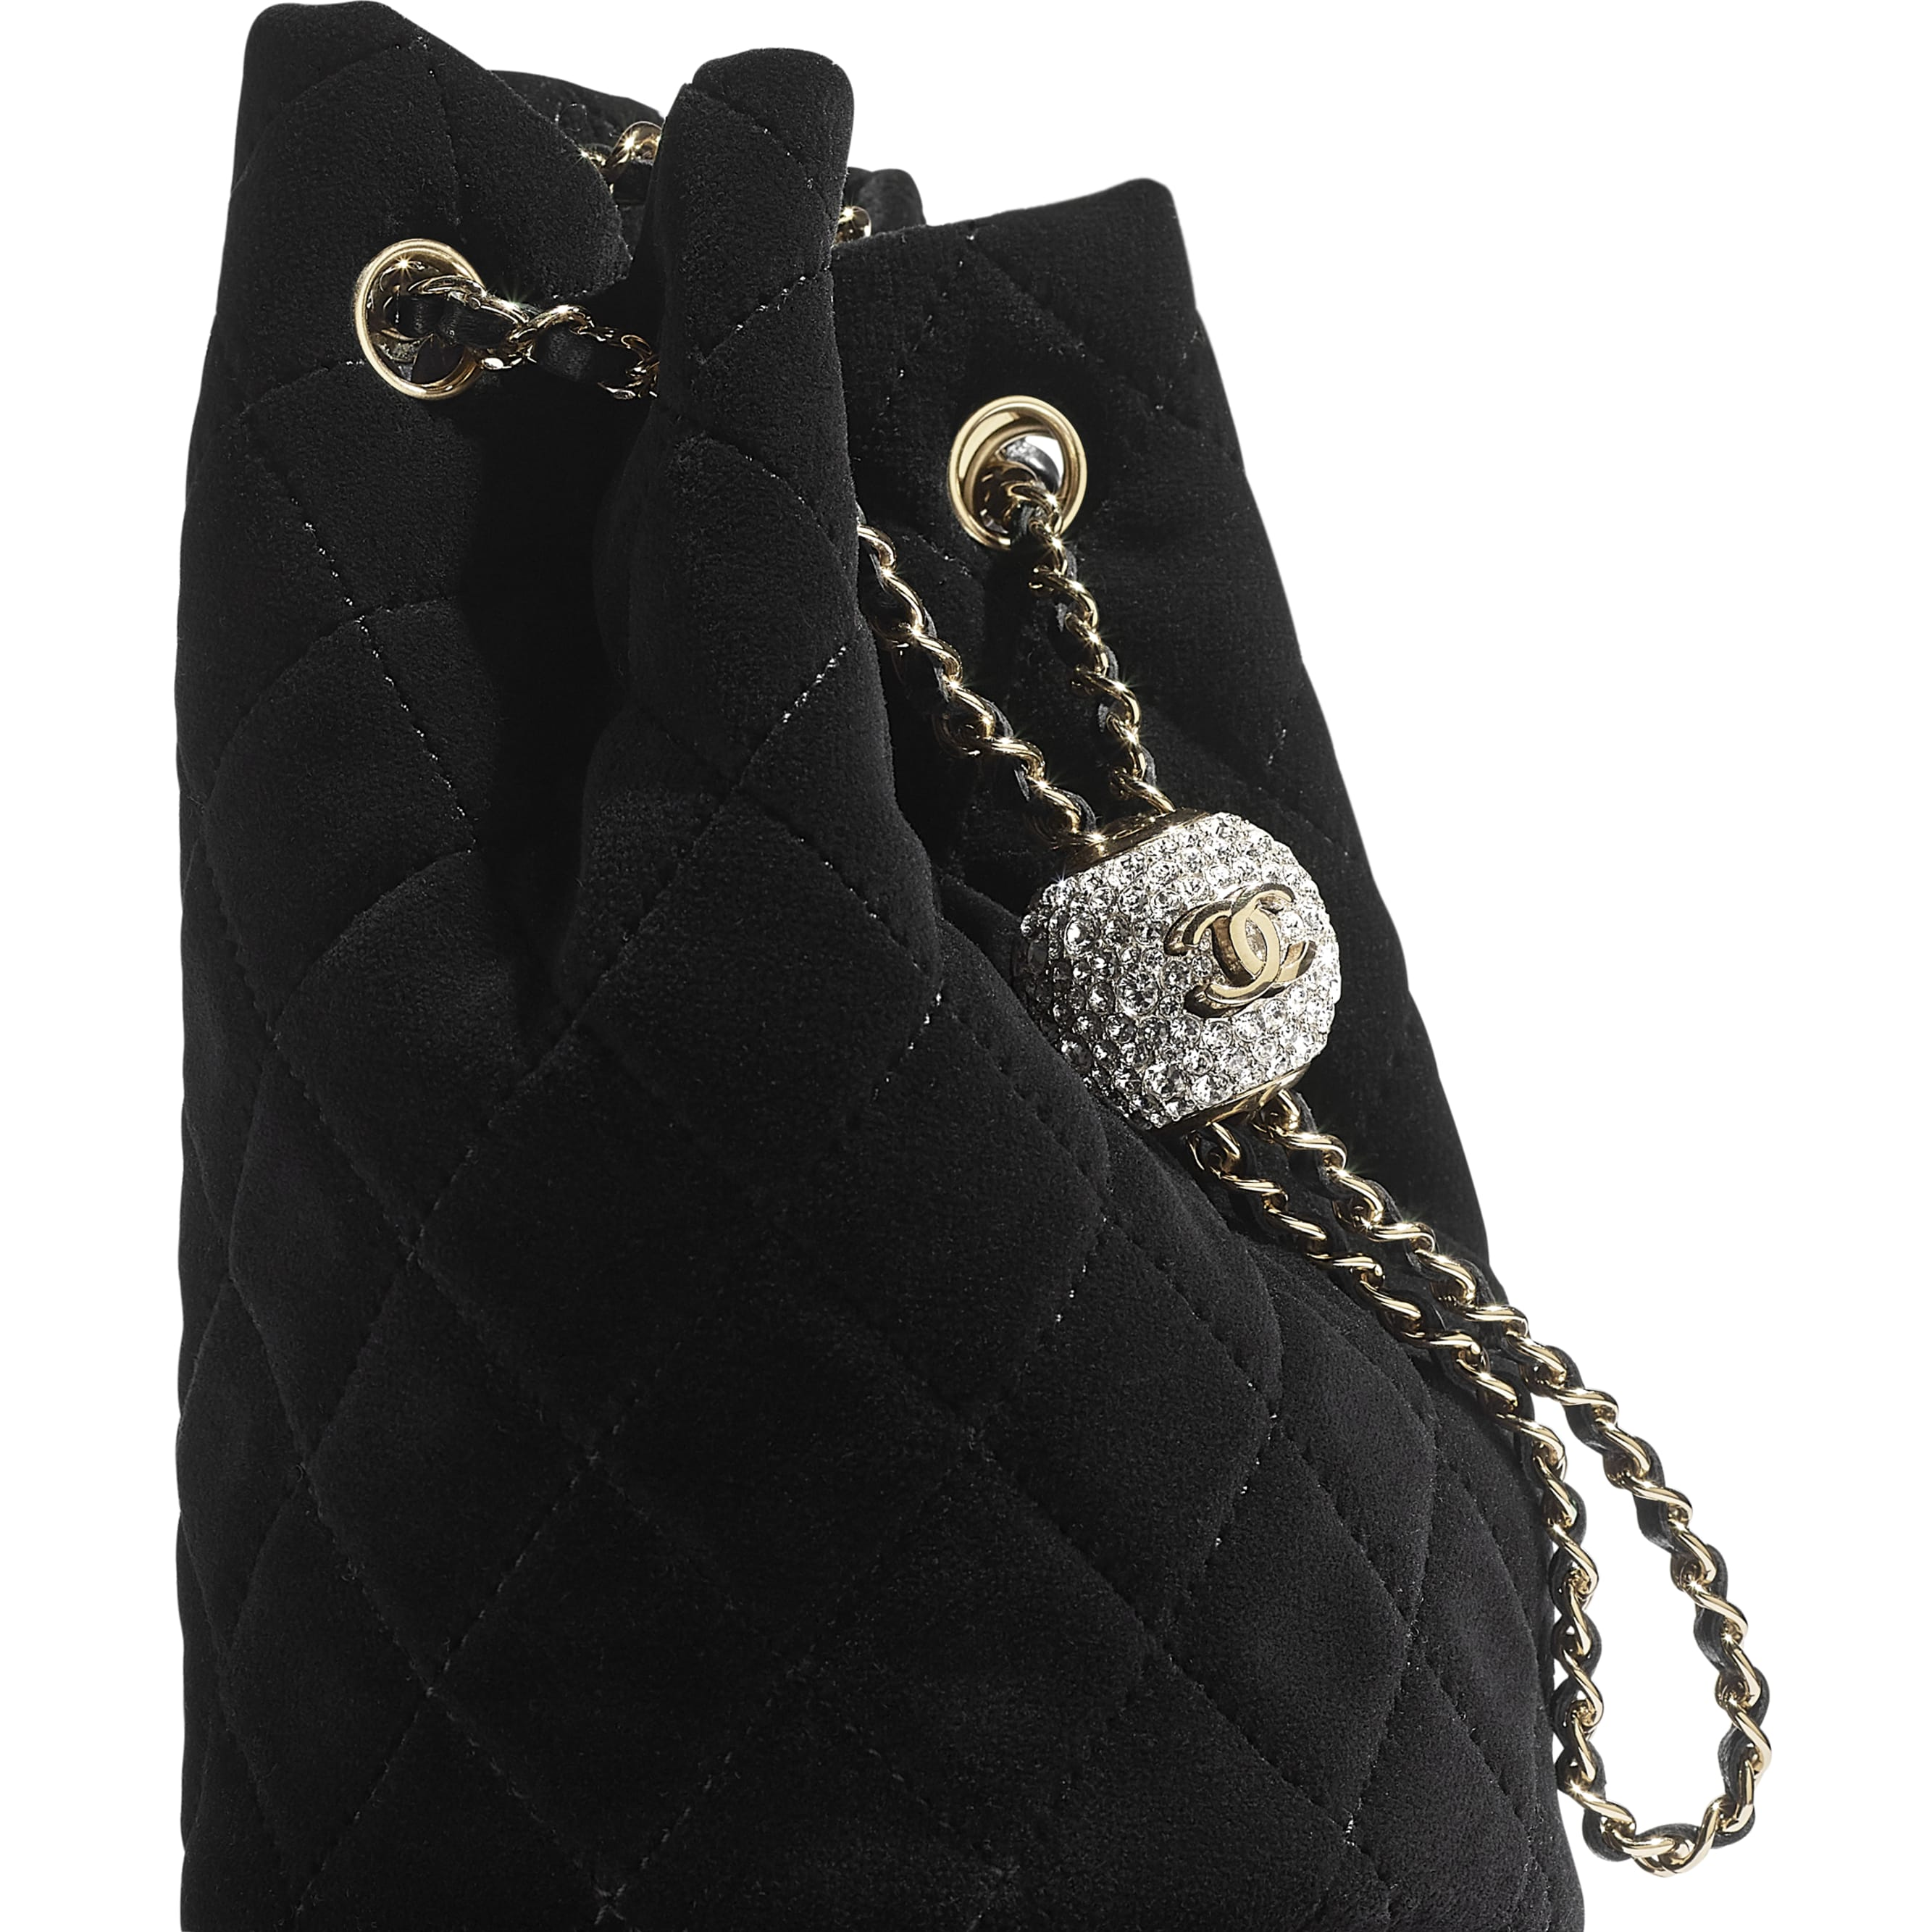 Drawstring Bag - Black - Velvet, Diamanté & Gold-Tone Metal - CHANEL - Extra view - see standard sized version